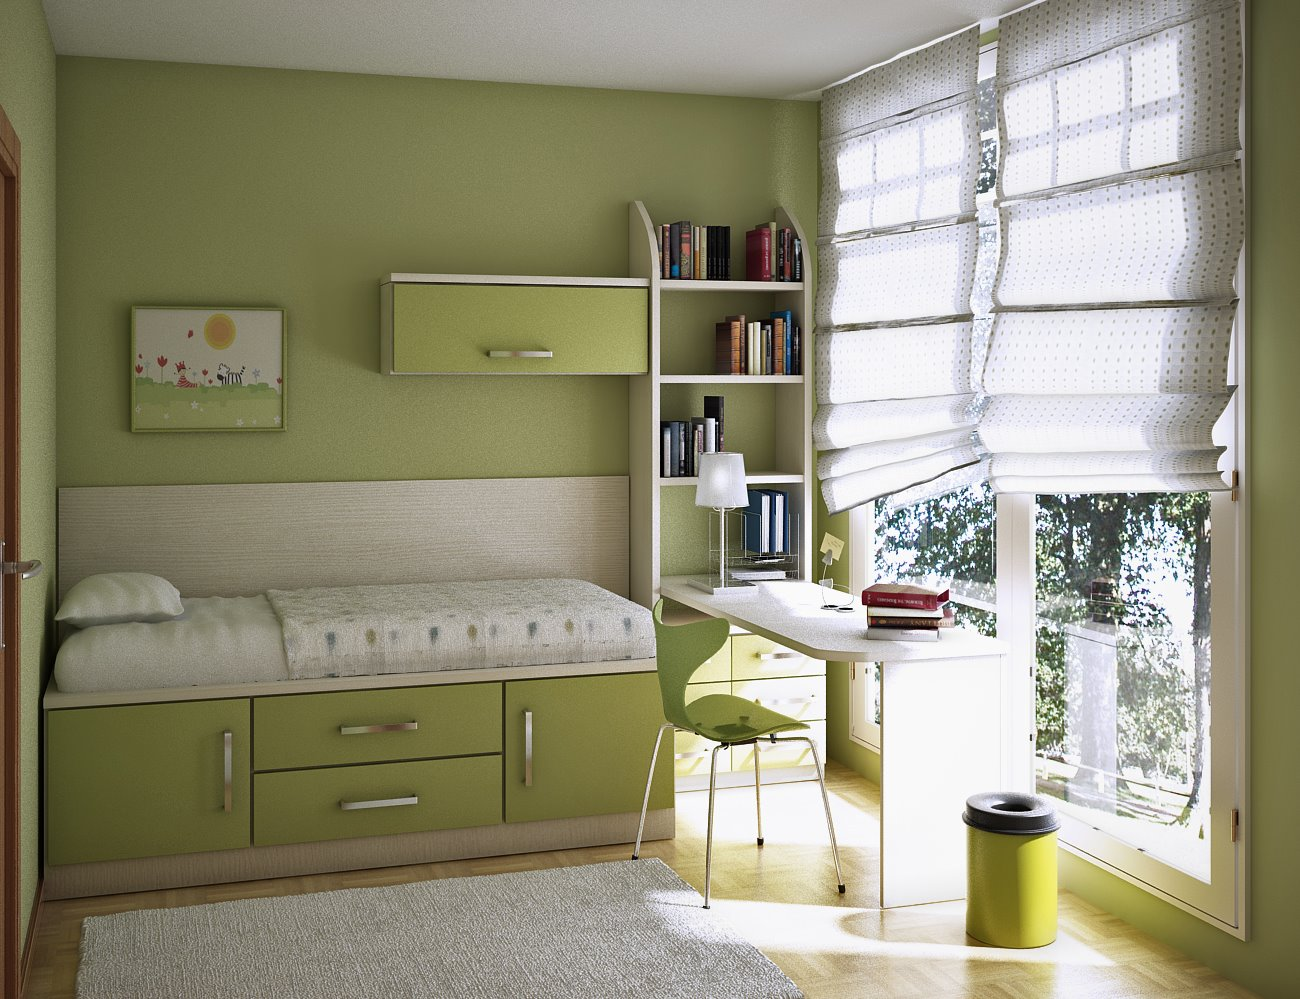 Room Trend Design and Decorating Ideas for Teen Room